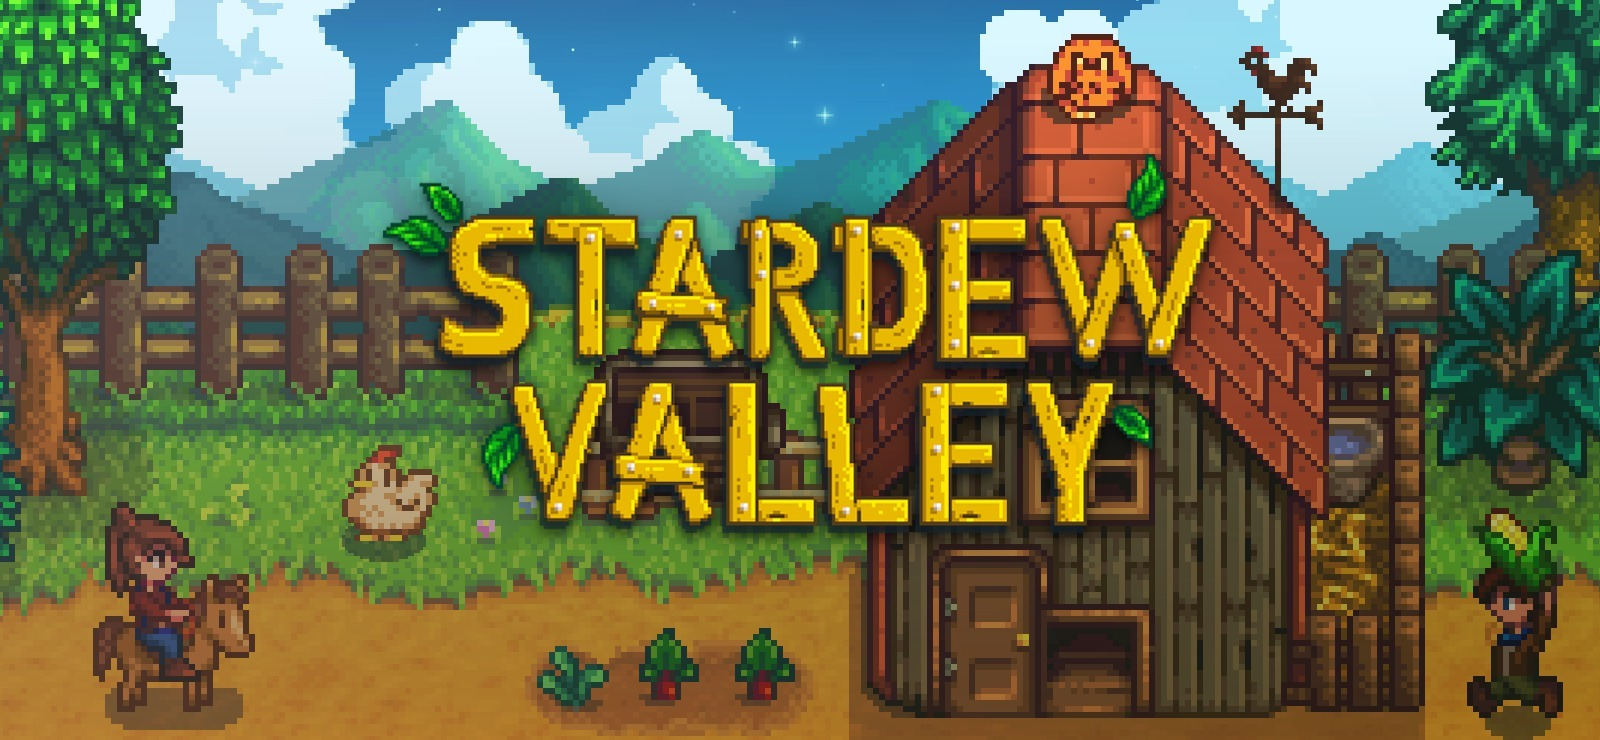 Review: Stardew Valley